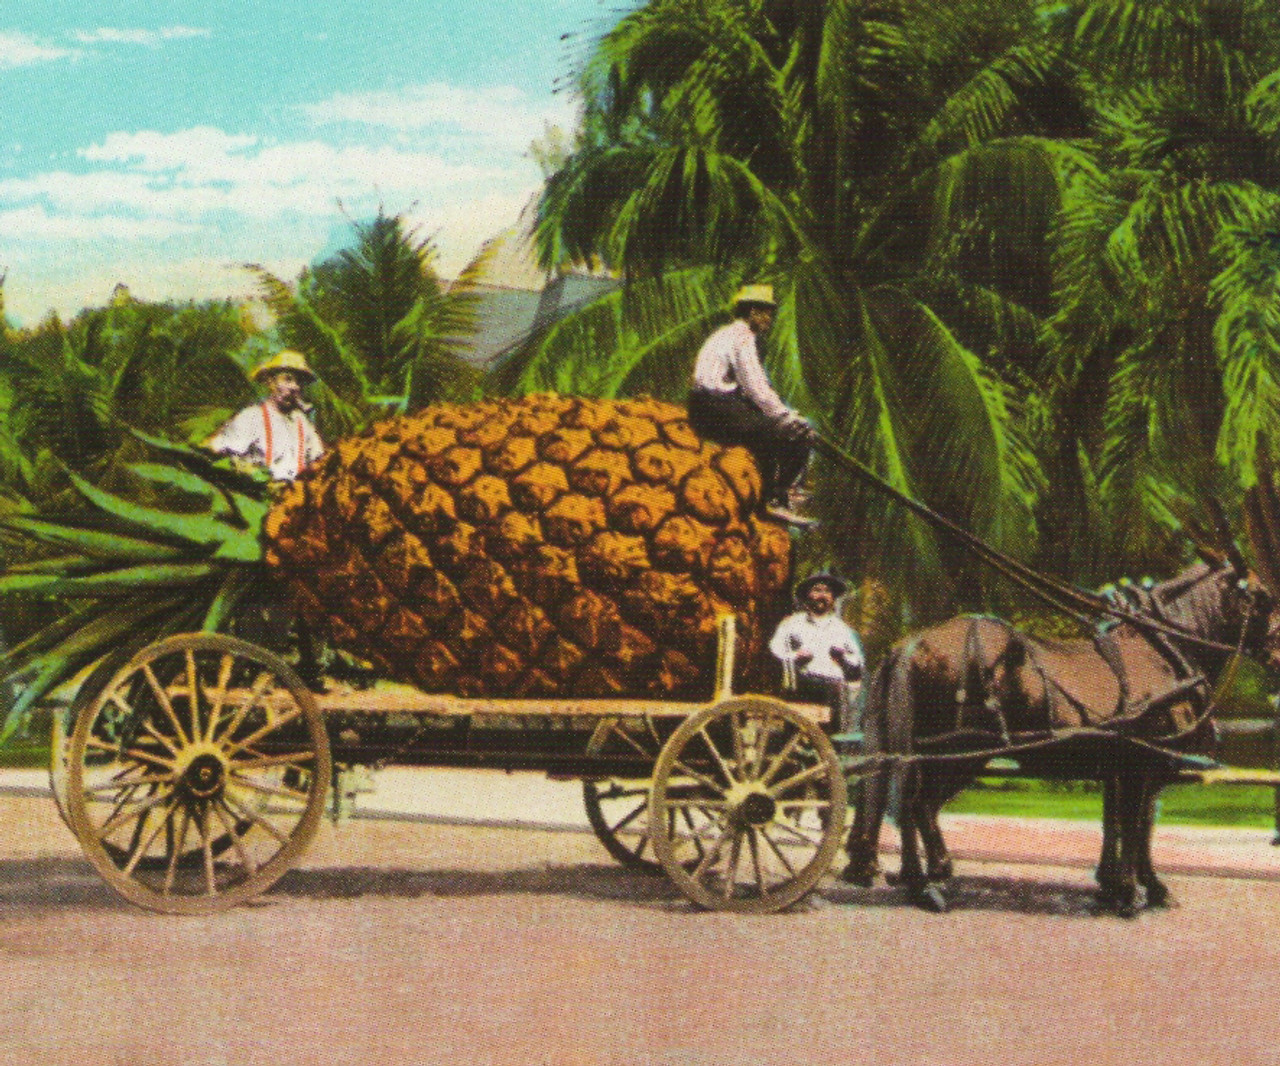 Pineapple Fruit Cart and Trees   Wall Art Posters